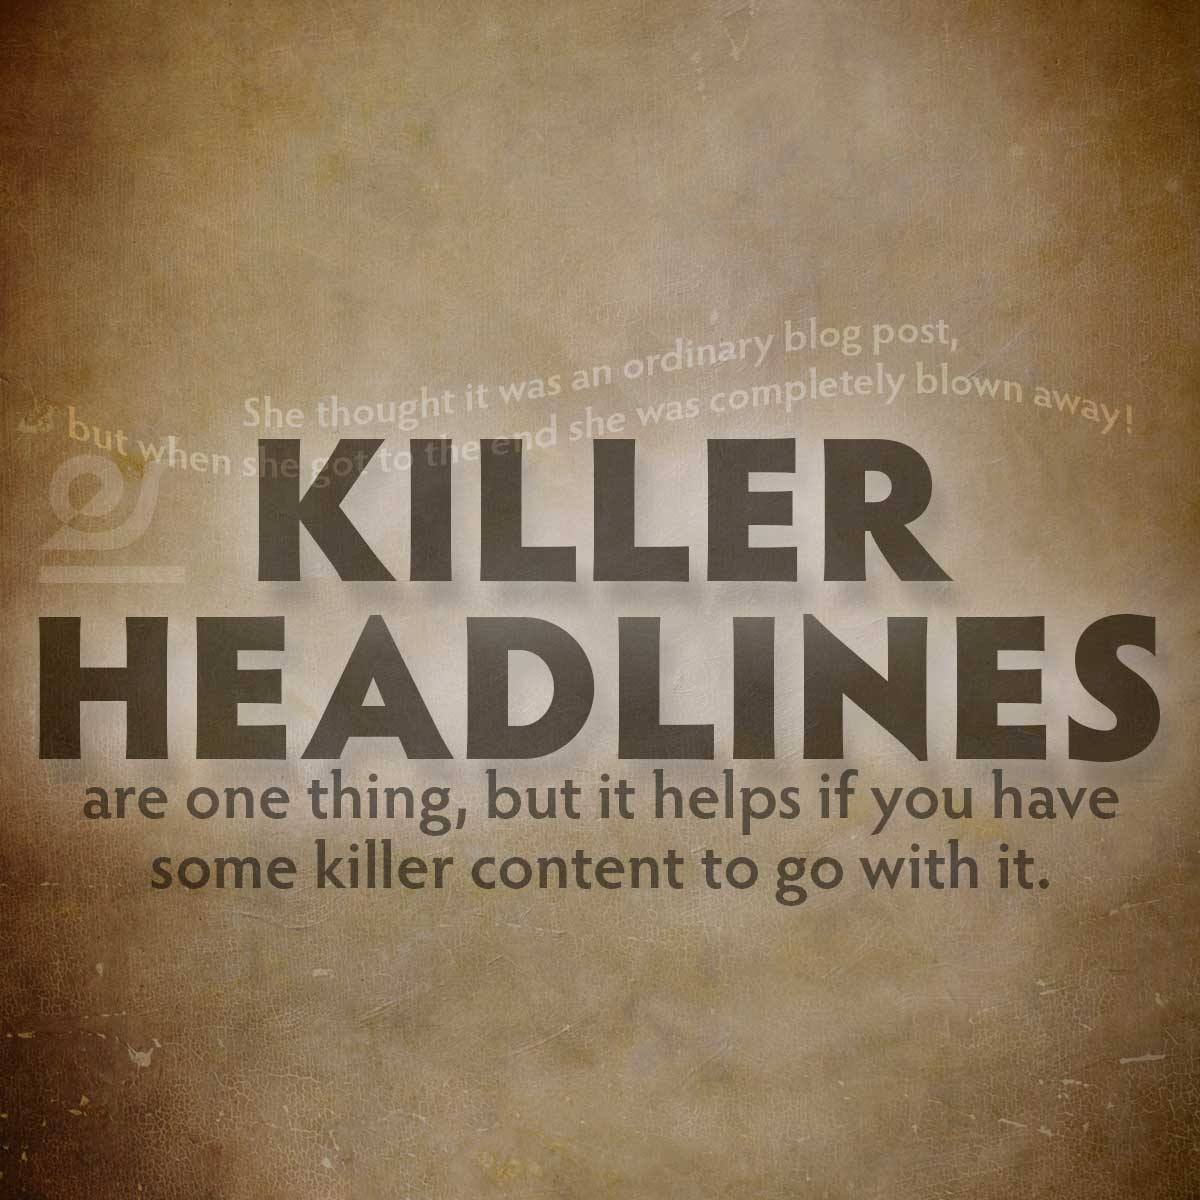 KILLER HEADLINE? She thought it was an ordinary blog post, but when she got to the end she was completely blown away!